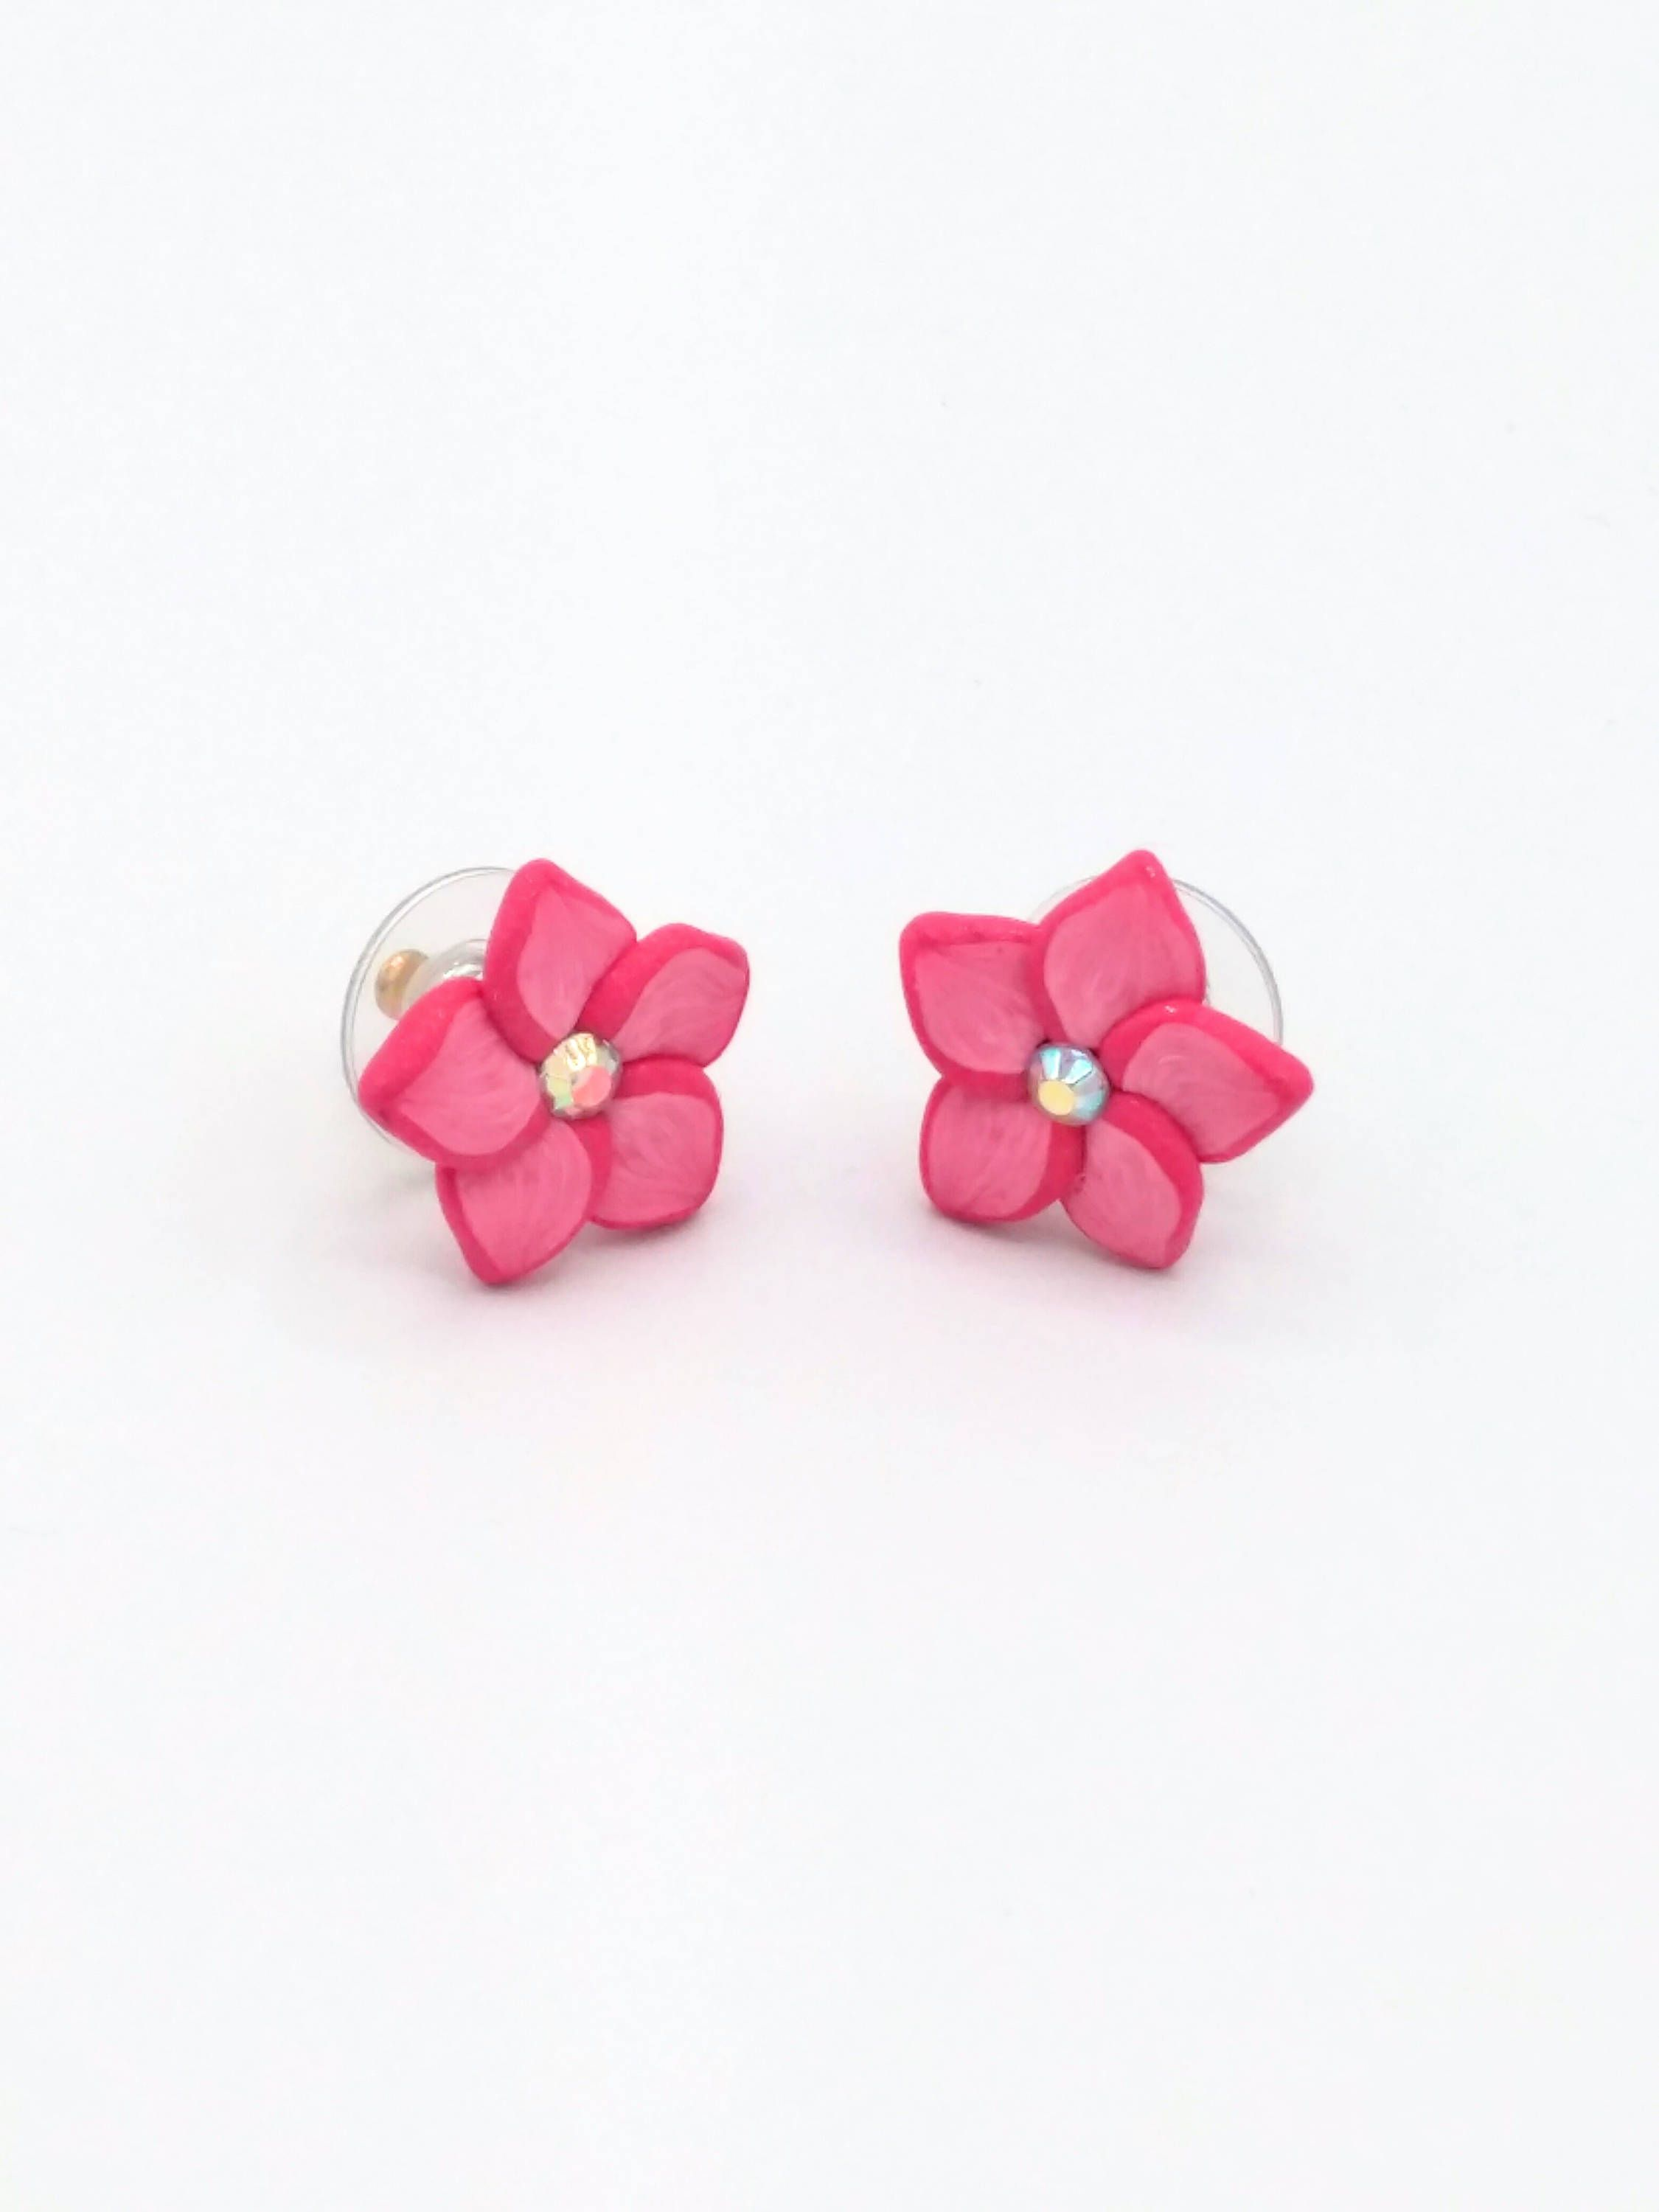 Pink Flower Earrings 75in Blush Plumeria Polymer Clay Post